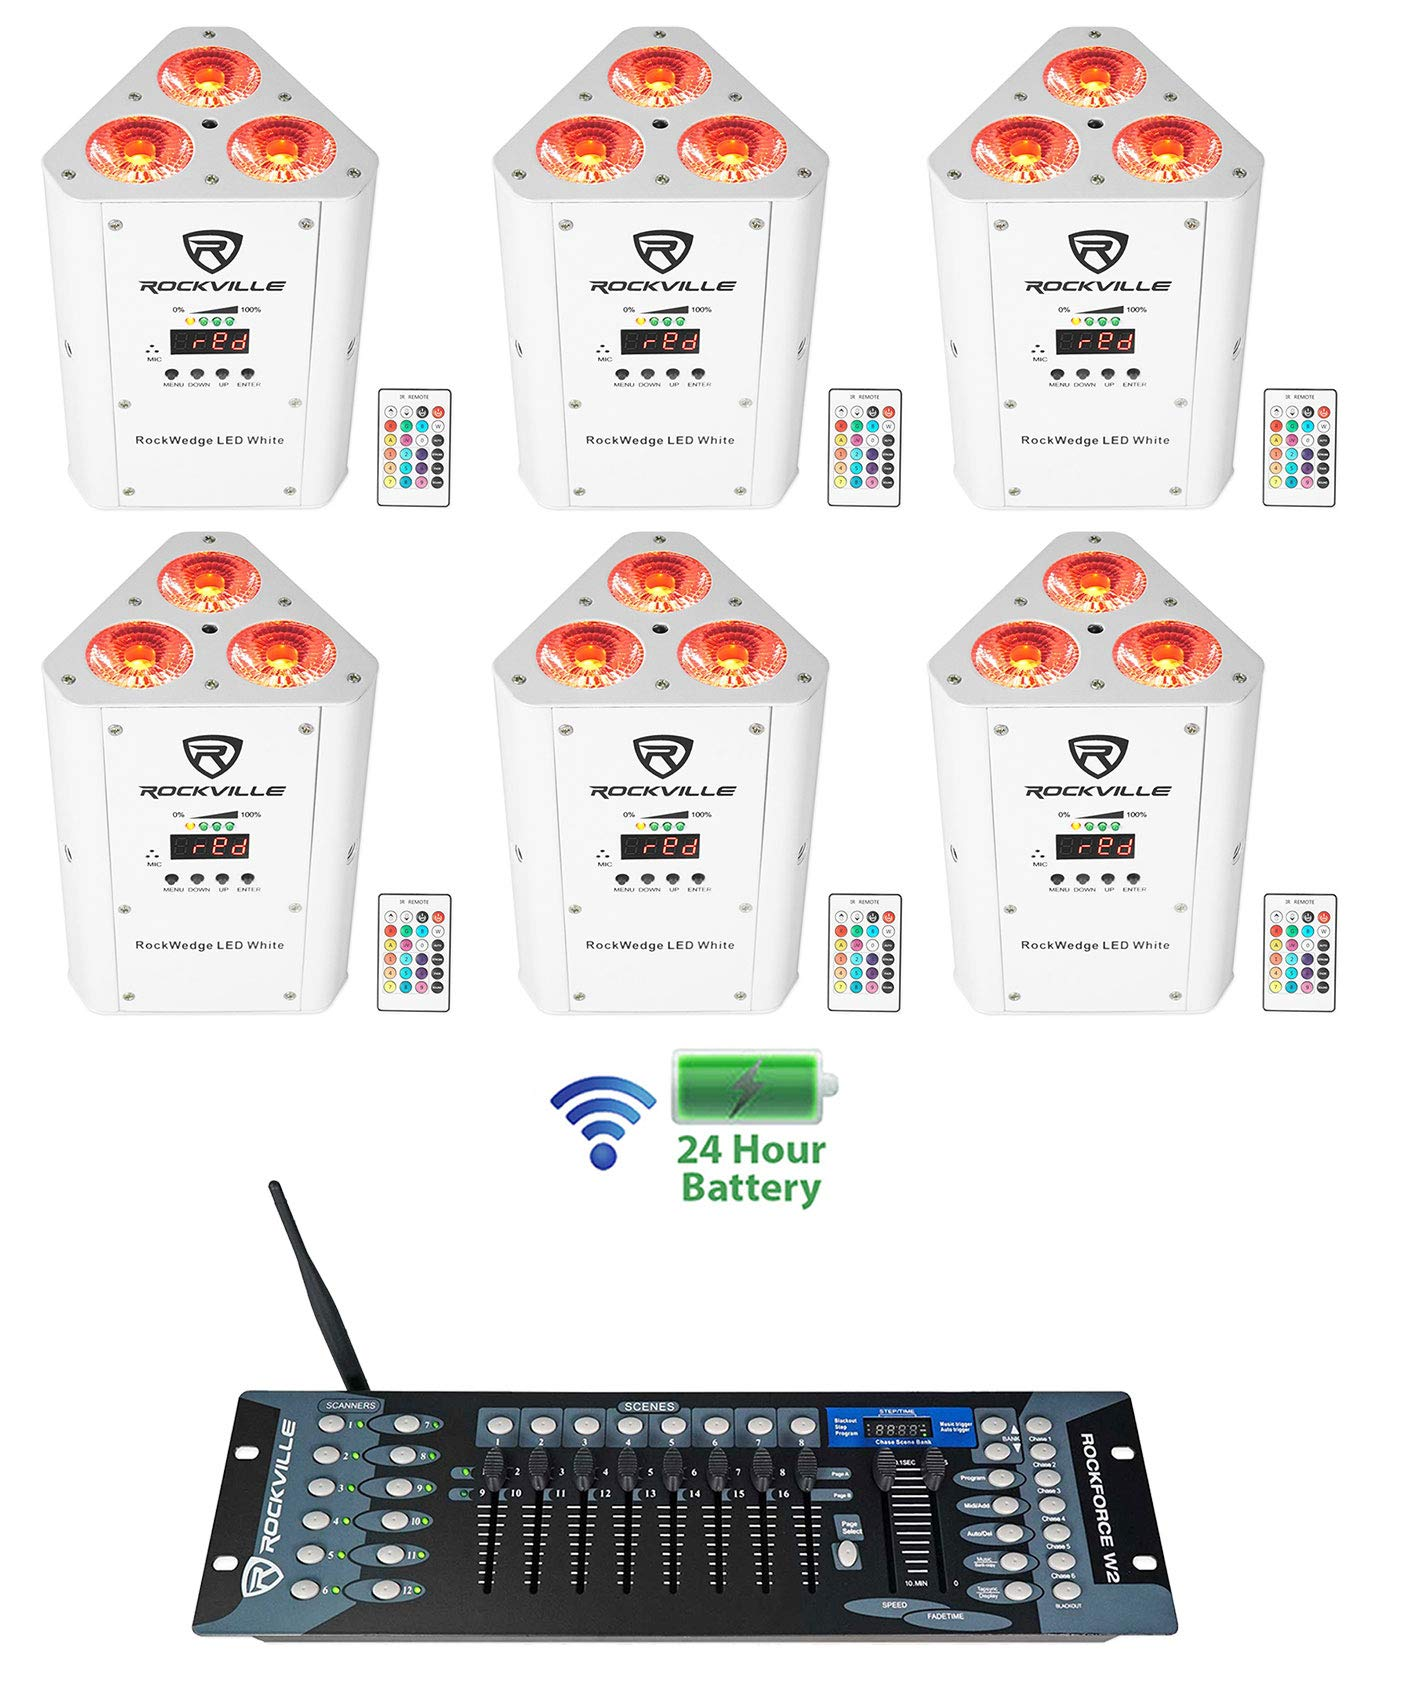 (6) Rockville RockWedge LED White Battery Powered Lights+Wireless DMX Controller